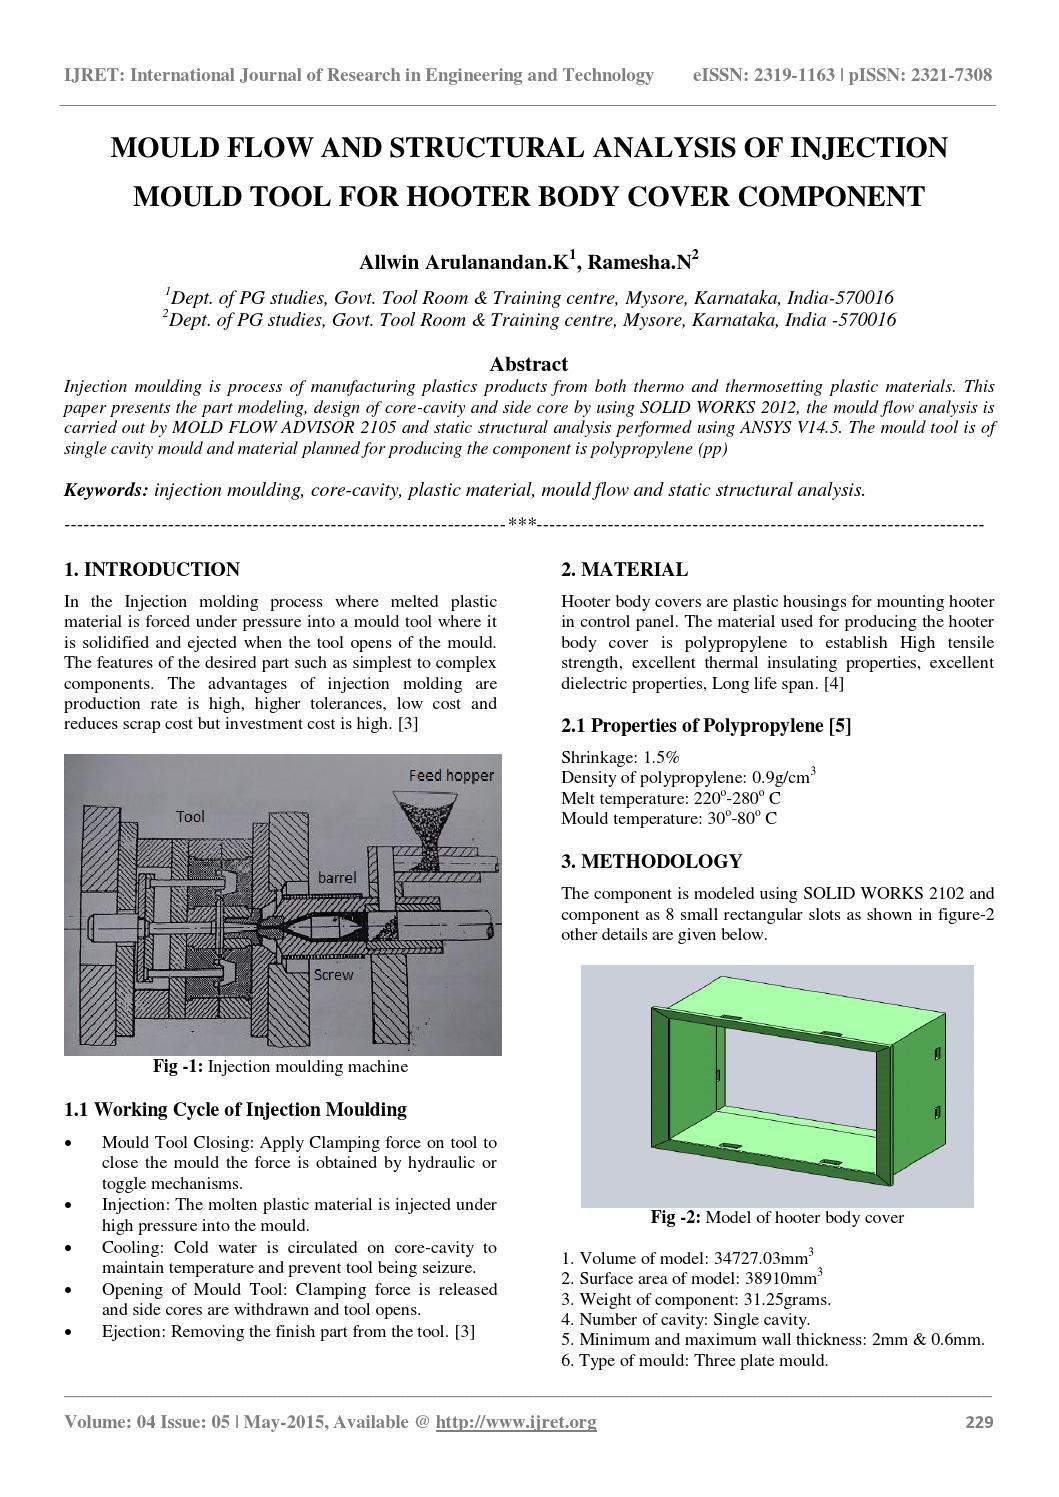 Mould flow and structural analysis of injection mould tool for